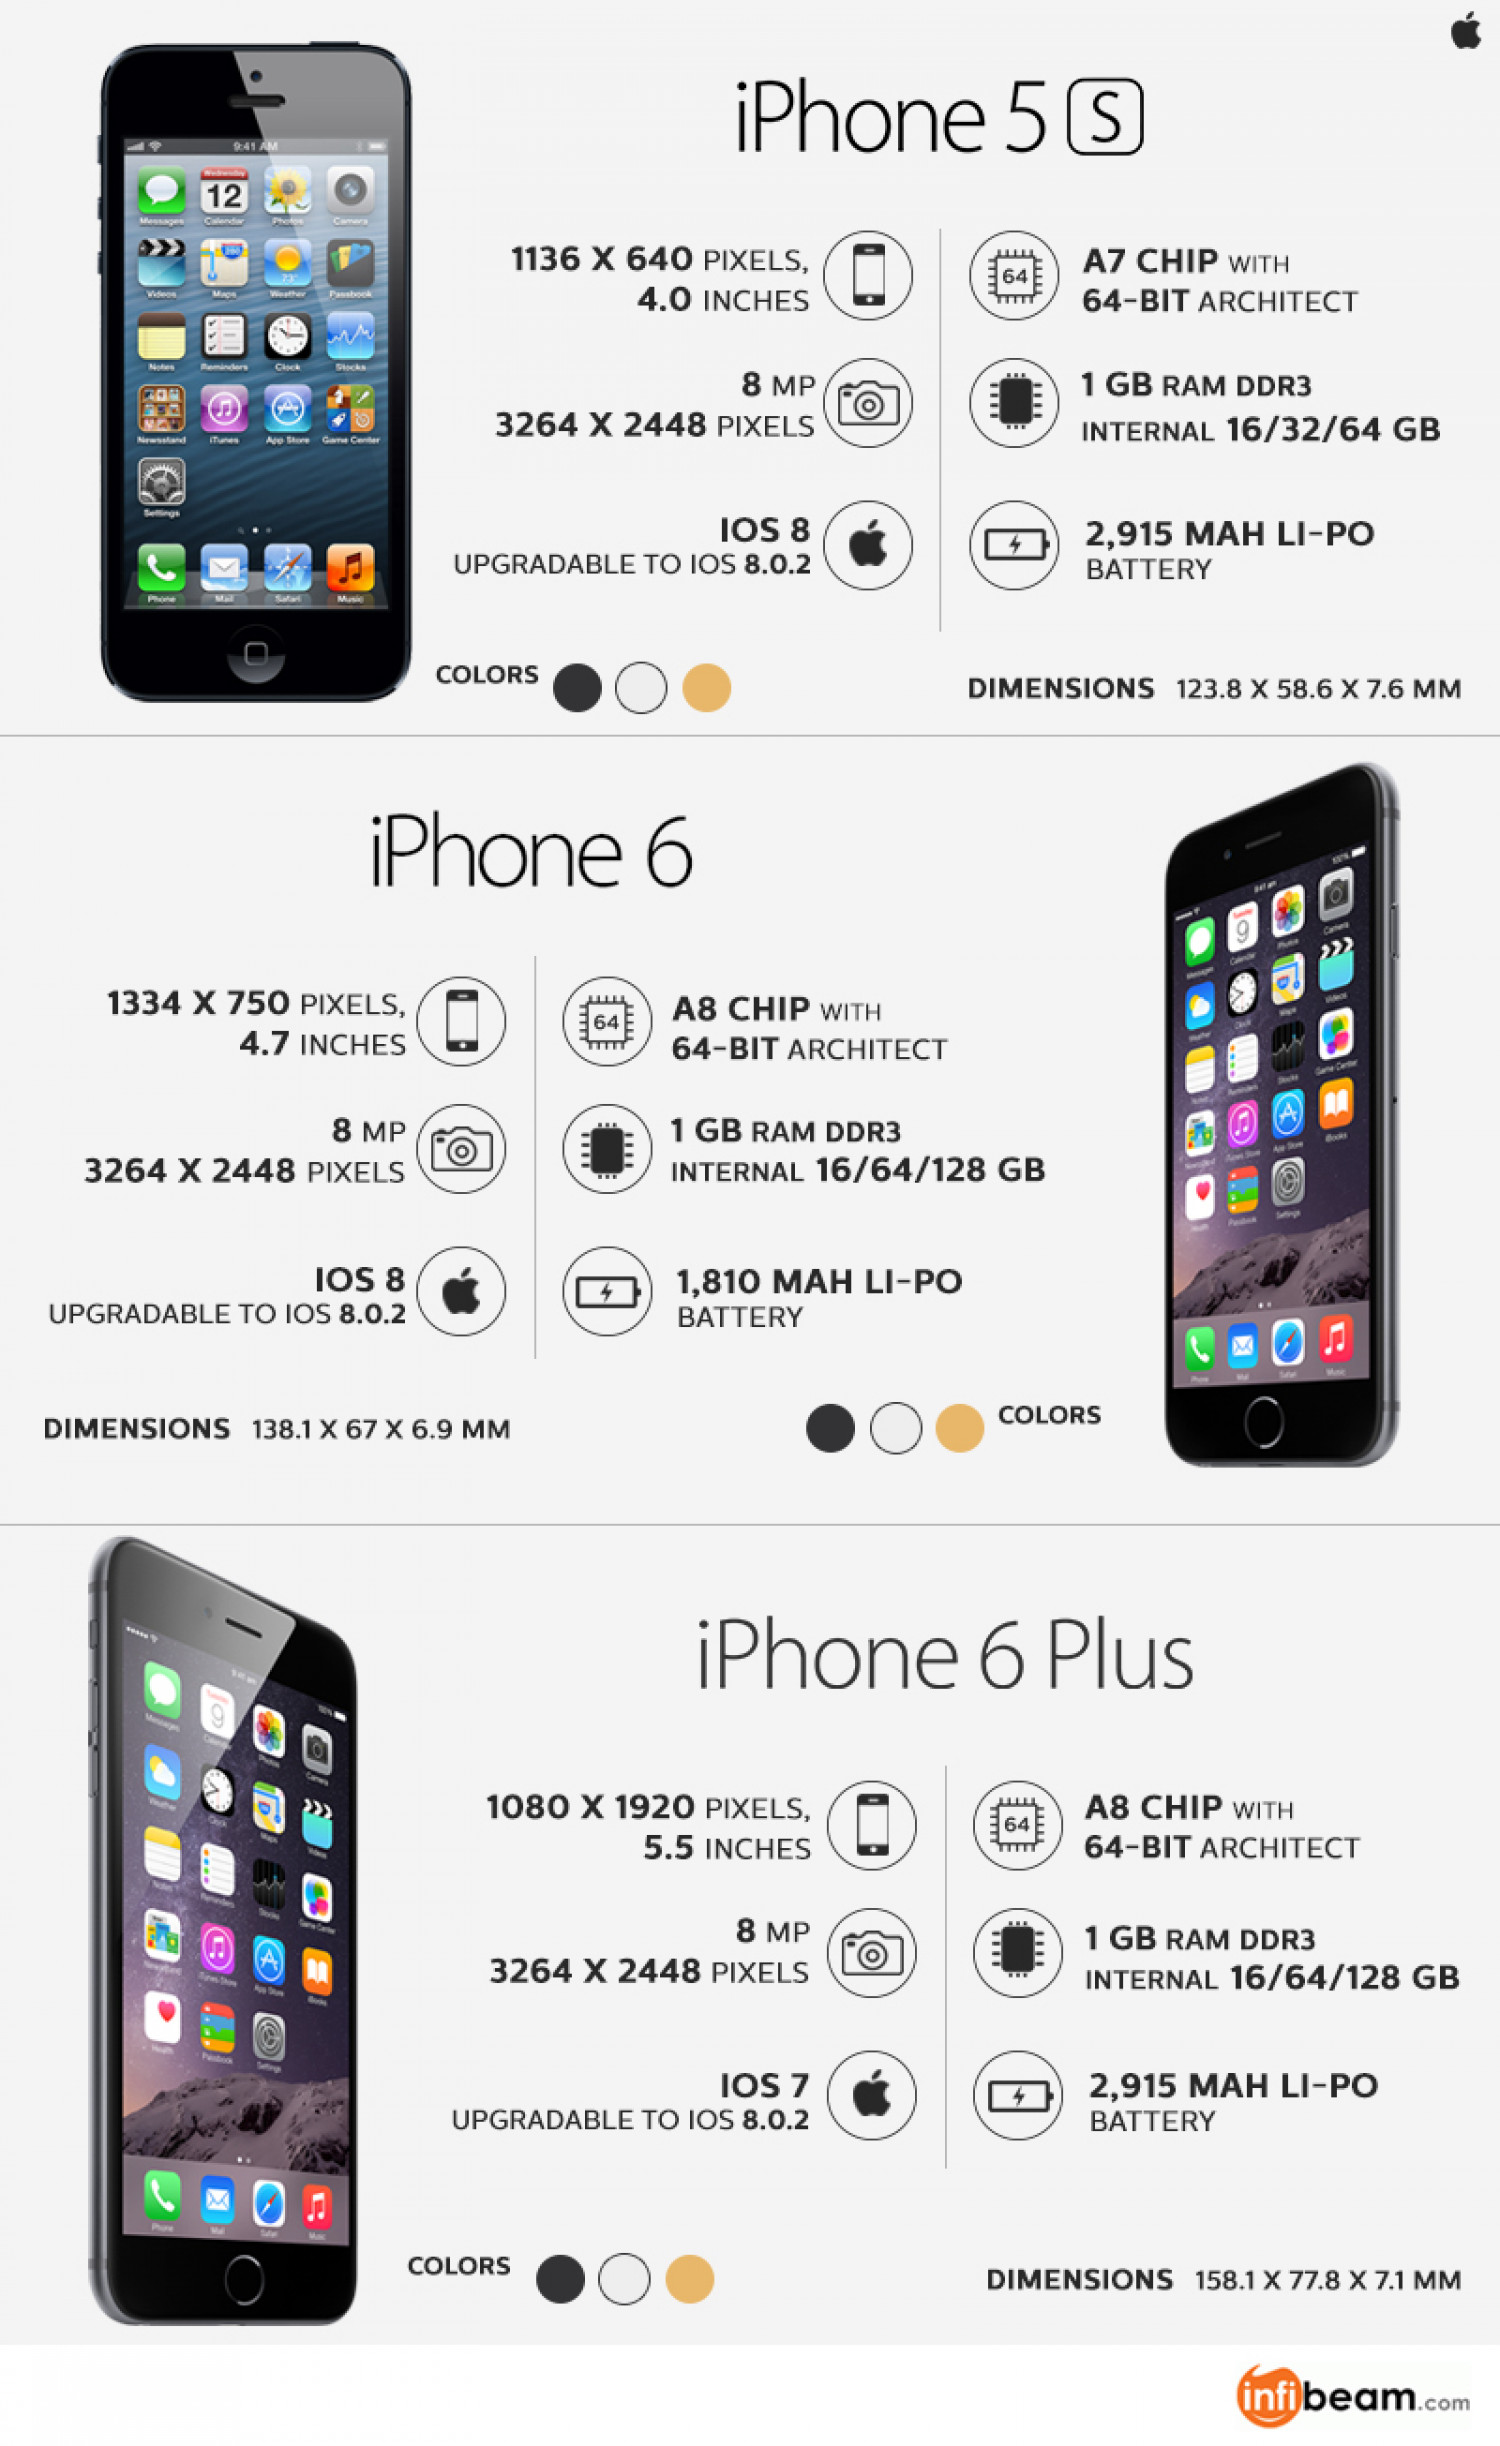 19e9158ae5 Comparing Iphone 6 and 6 Plus with Iphone 5s Infographic